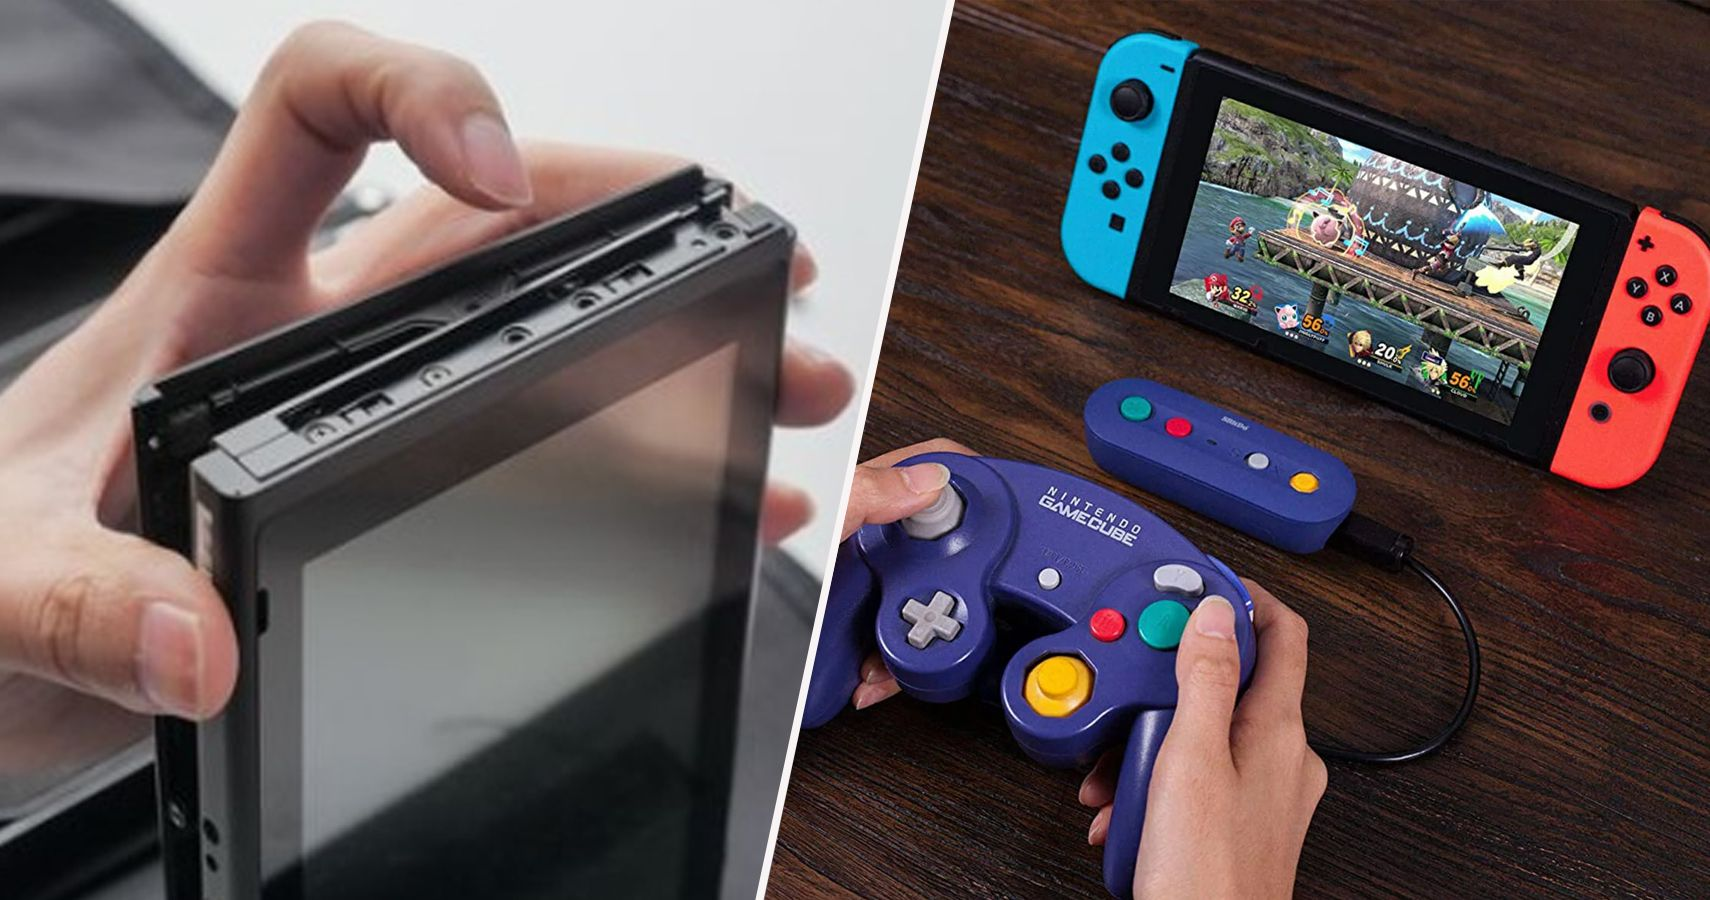 20 Things Only Experts Know The Nintendo Switch Can Do